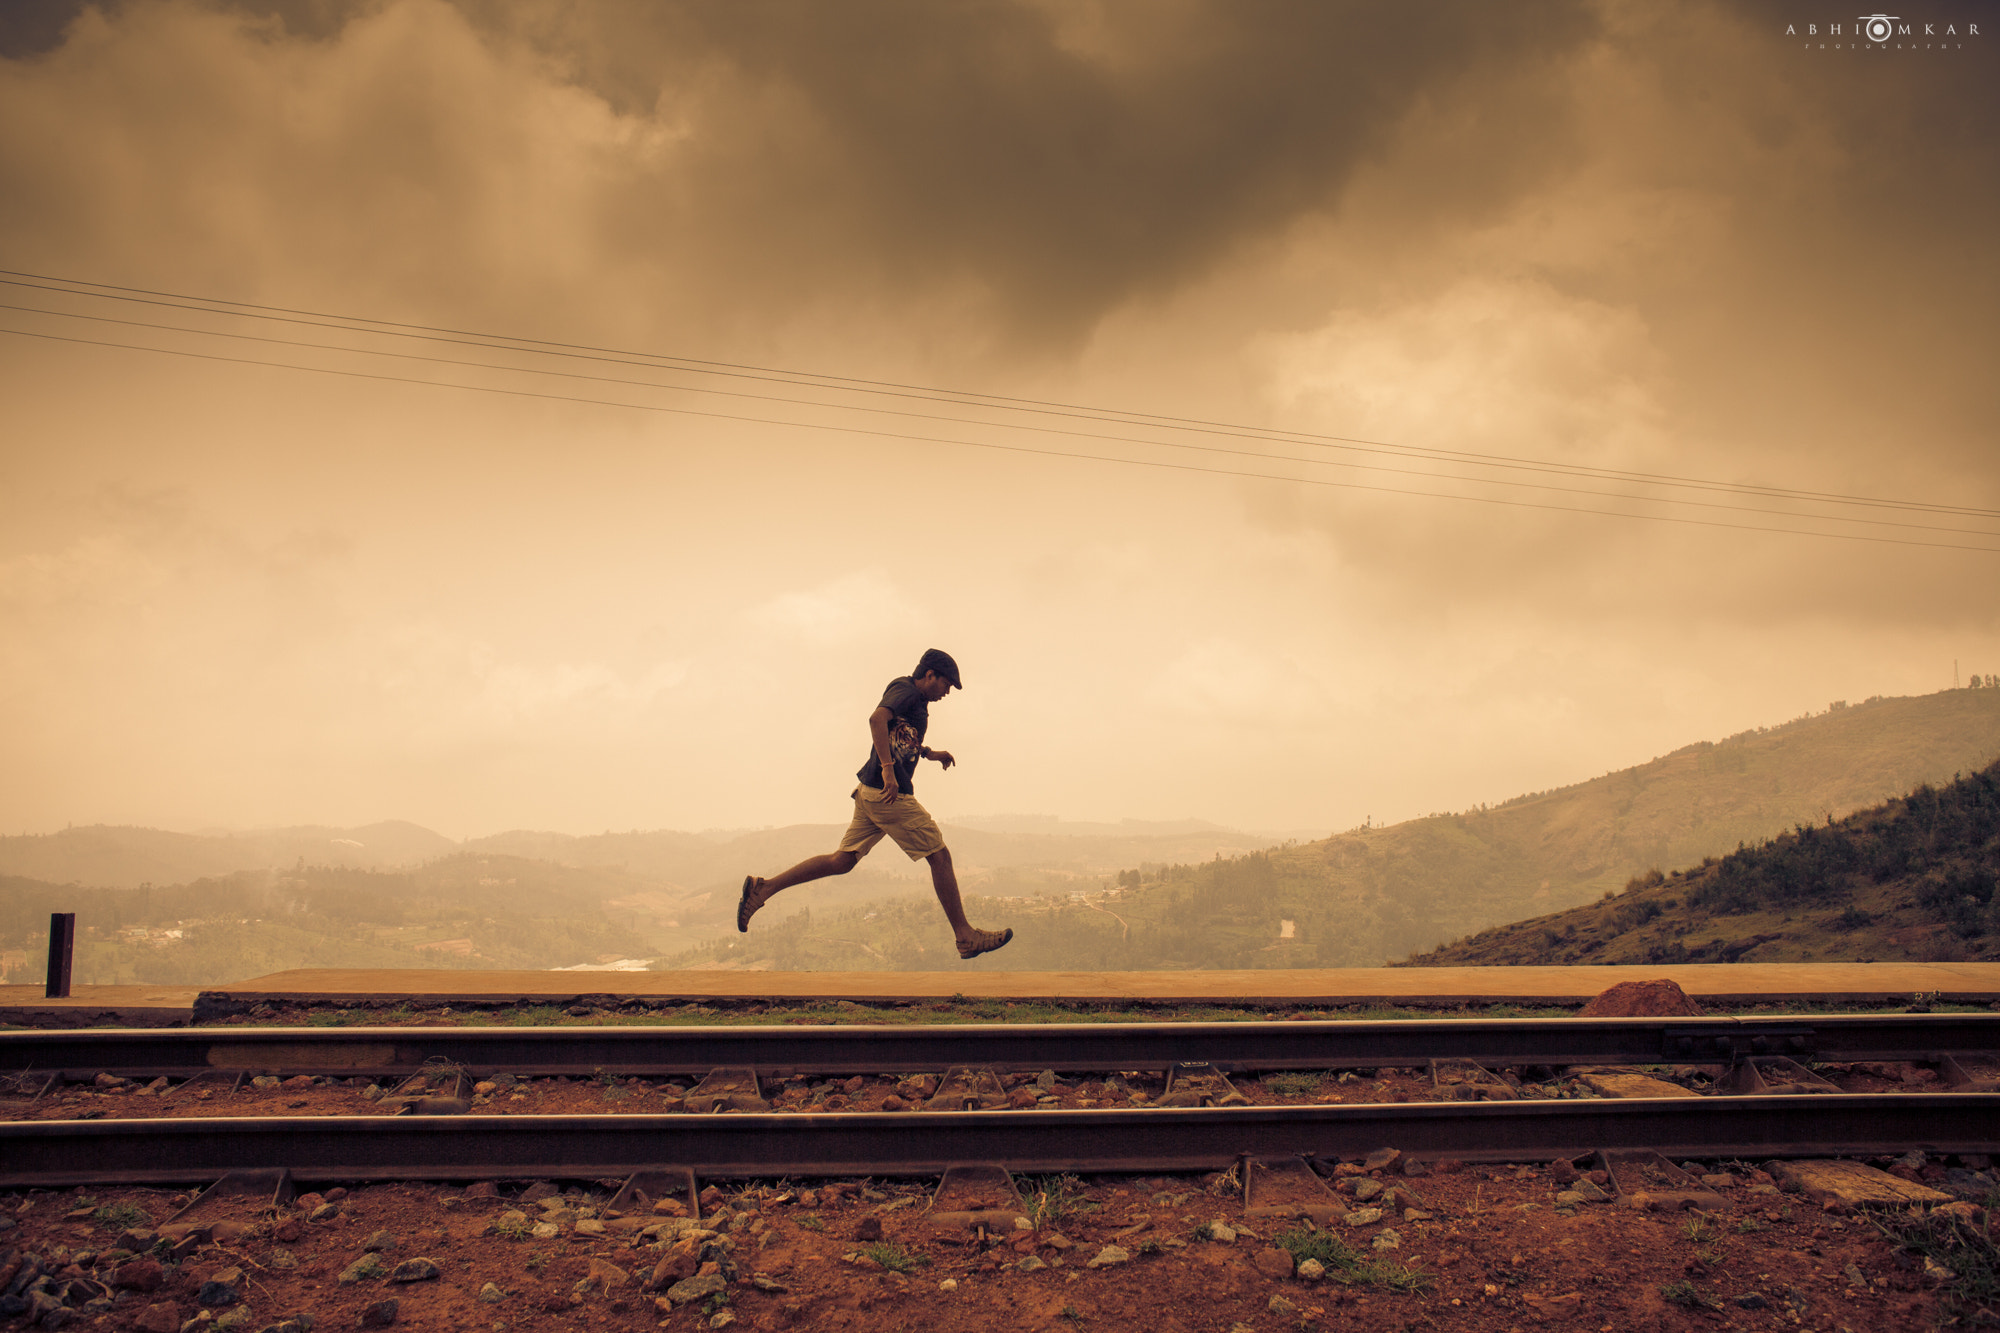 Photograph Catch the Train If you can. by Abhinay Omkar on 500px